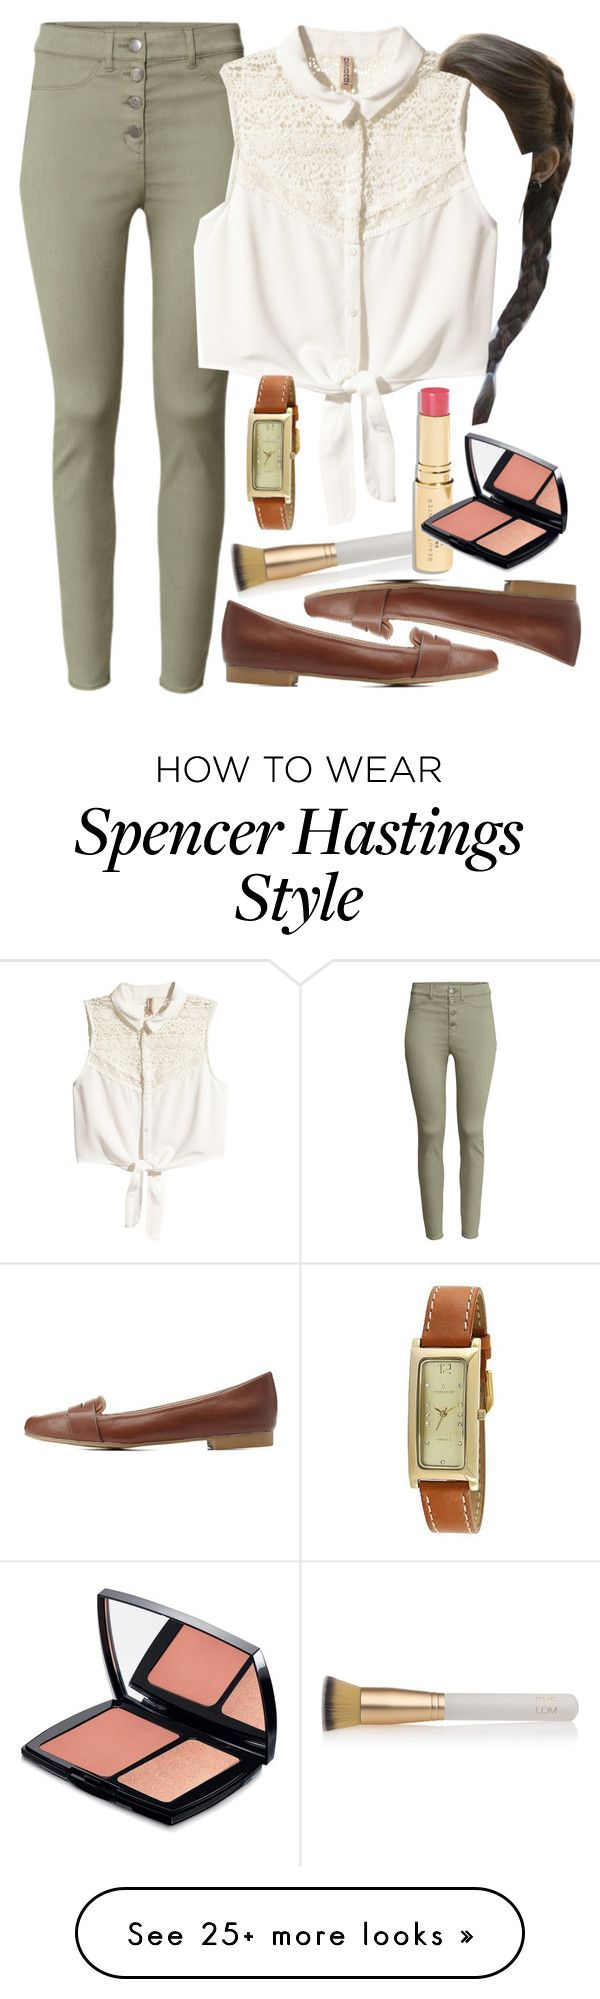 """Spencer Hastings inspired outfit"" by liarsstyle on Polyvore featuring Eve Lom, H&M, Charlotte Russe and Lancôme"